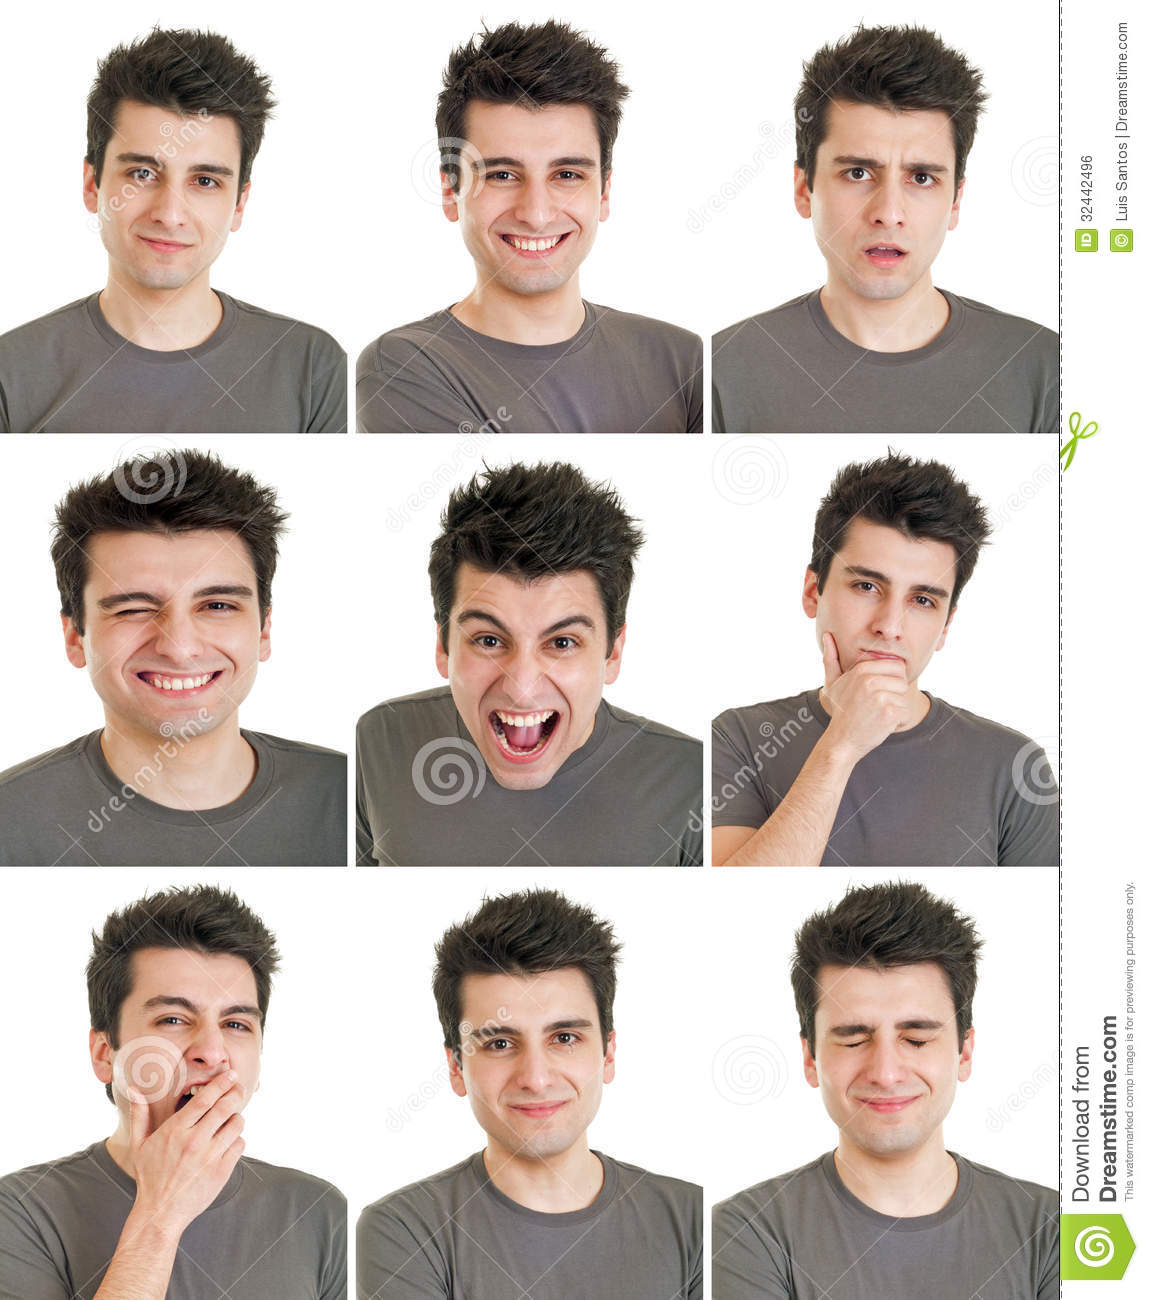 Man Face Expressions Stock Photo. Image Of Facial